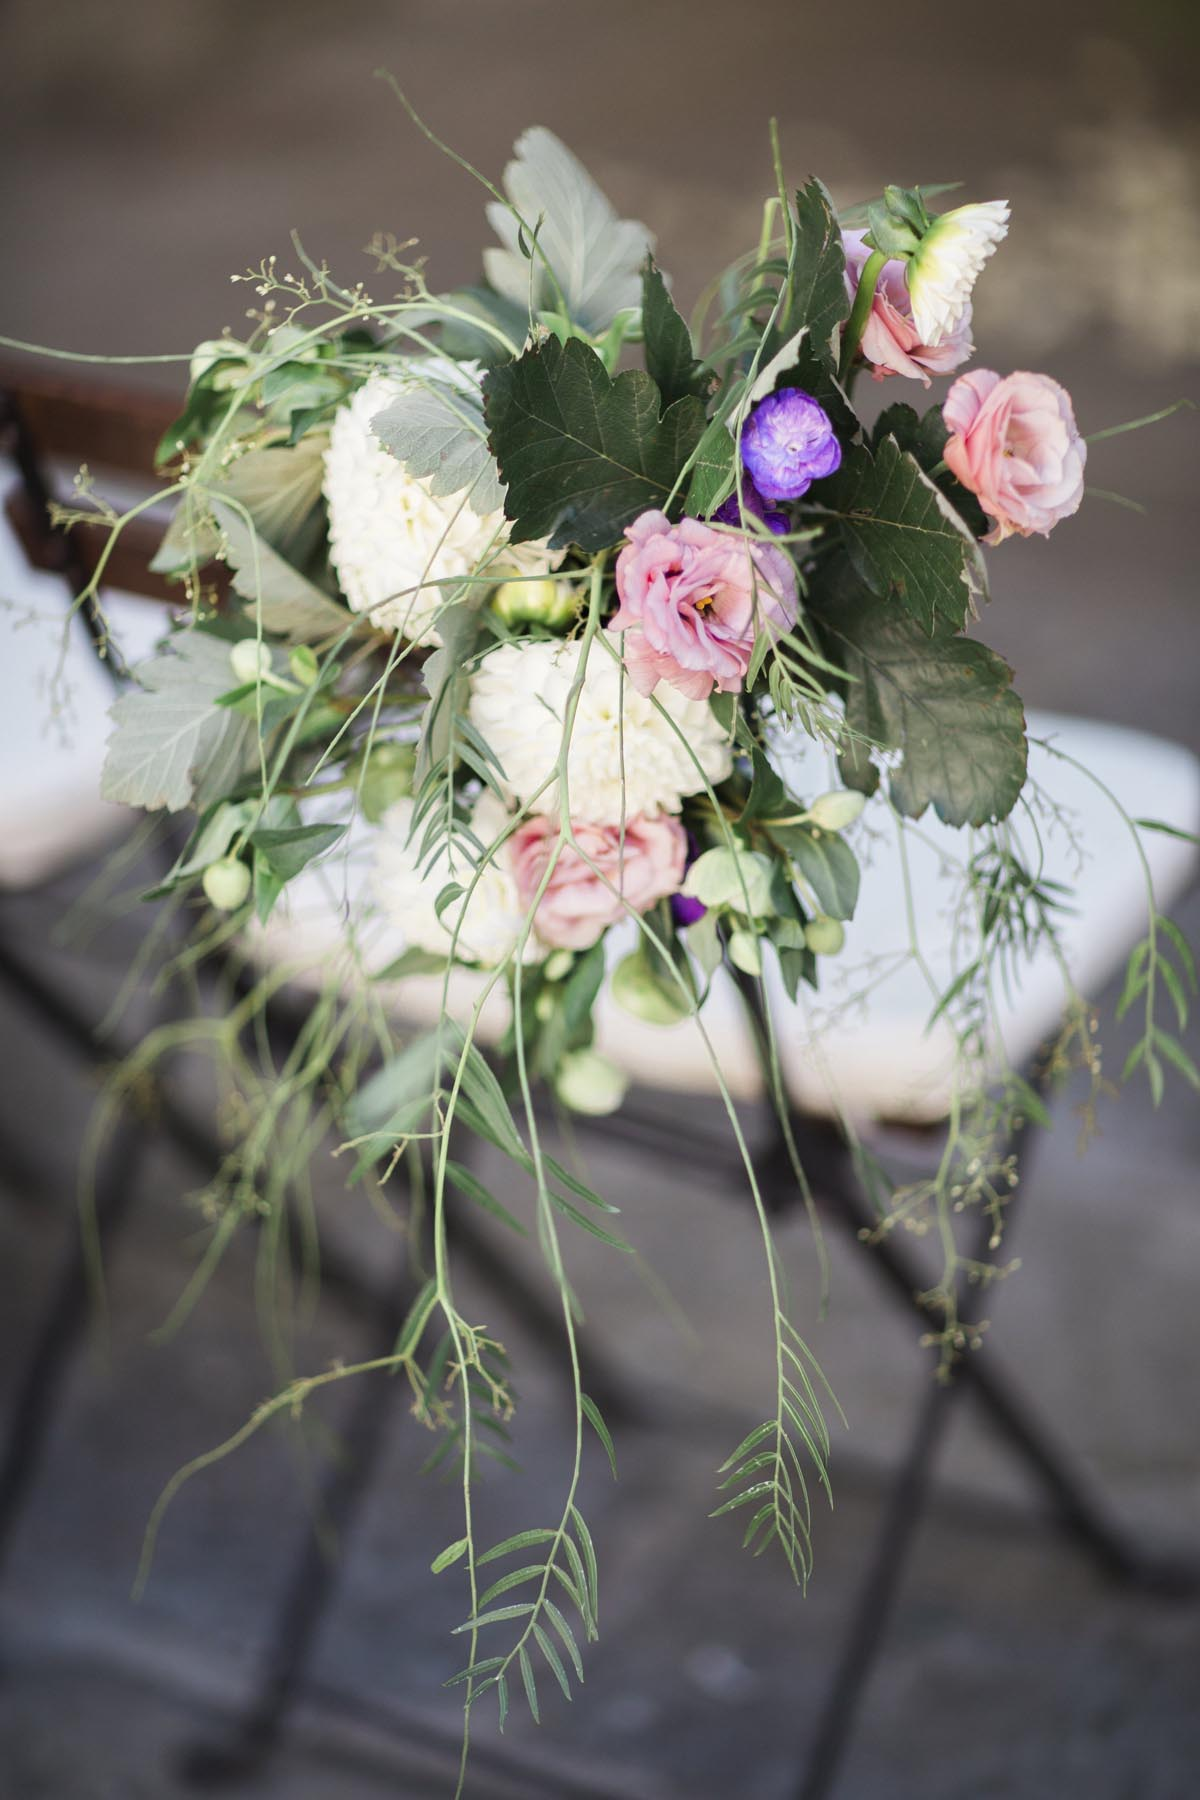 wedding-ceremony-chairs-with-flowers-on-end-of-chairs-with-peonies-and-roses-and-greens